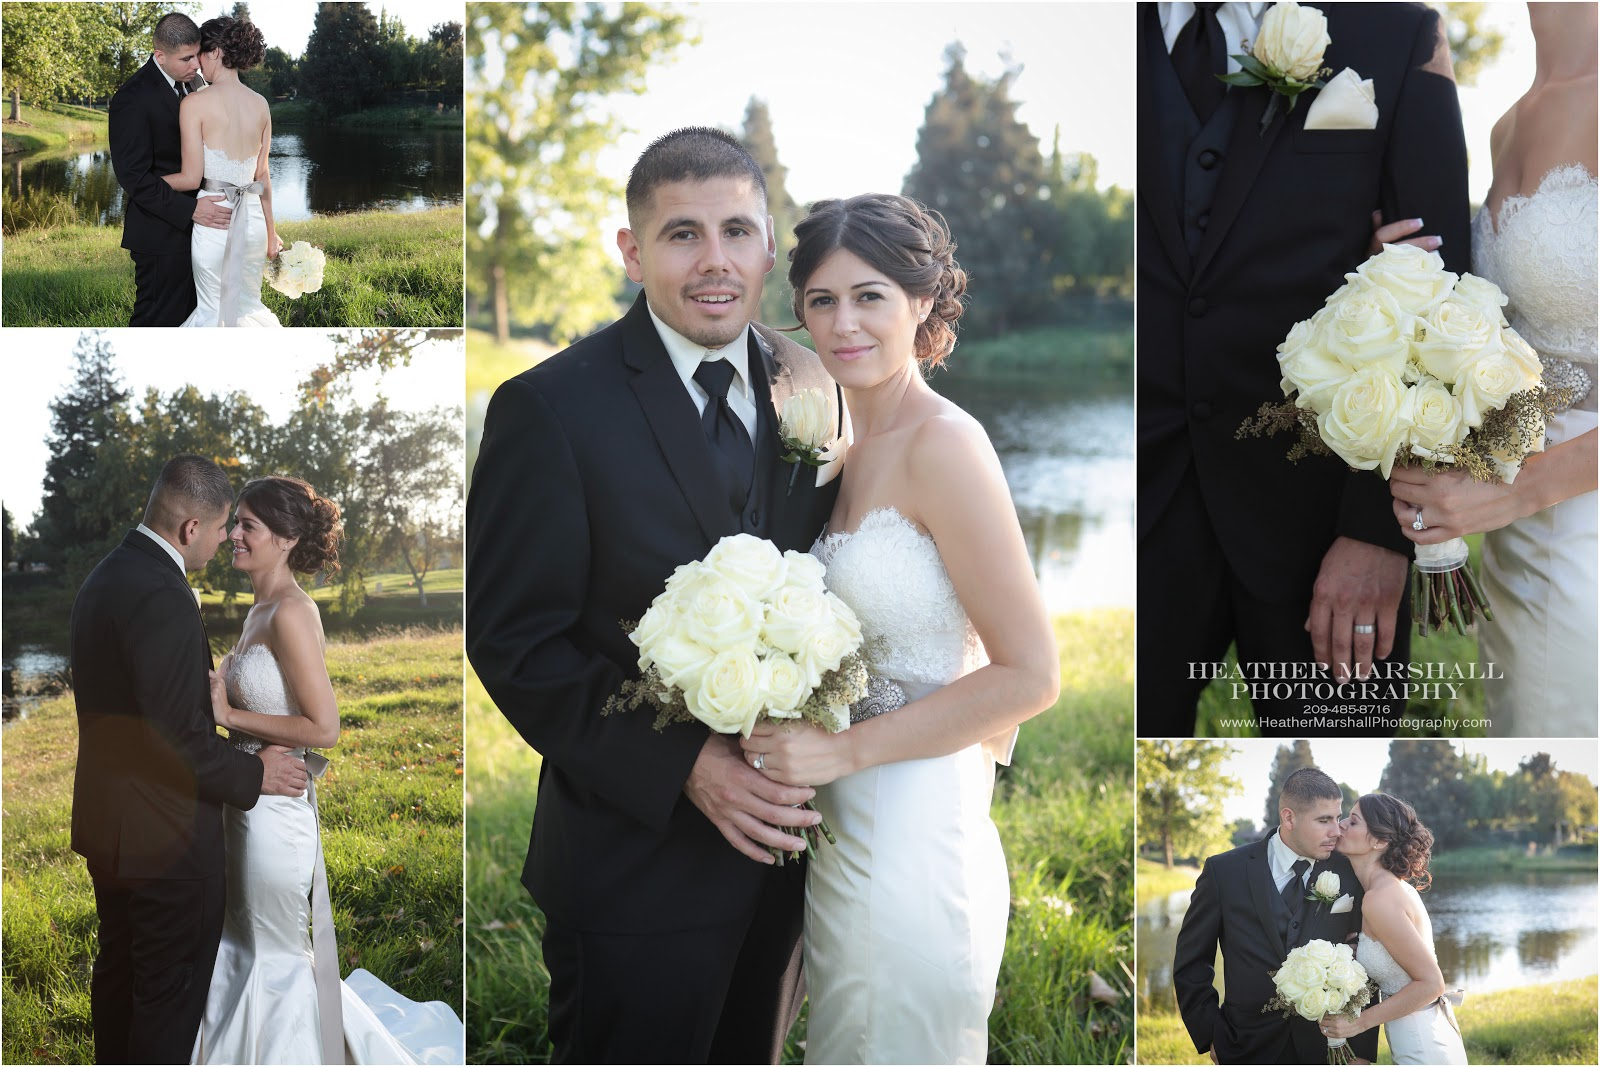 Posted By Heather Marshall Labels Stockton Wedding Photographer